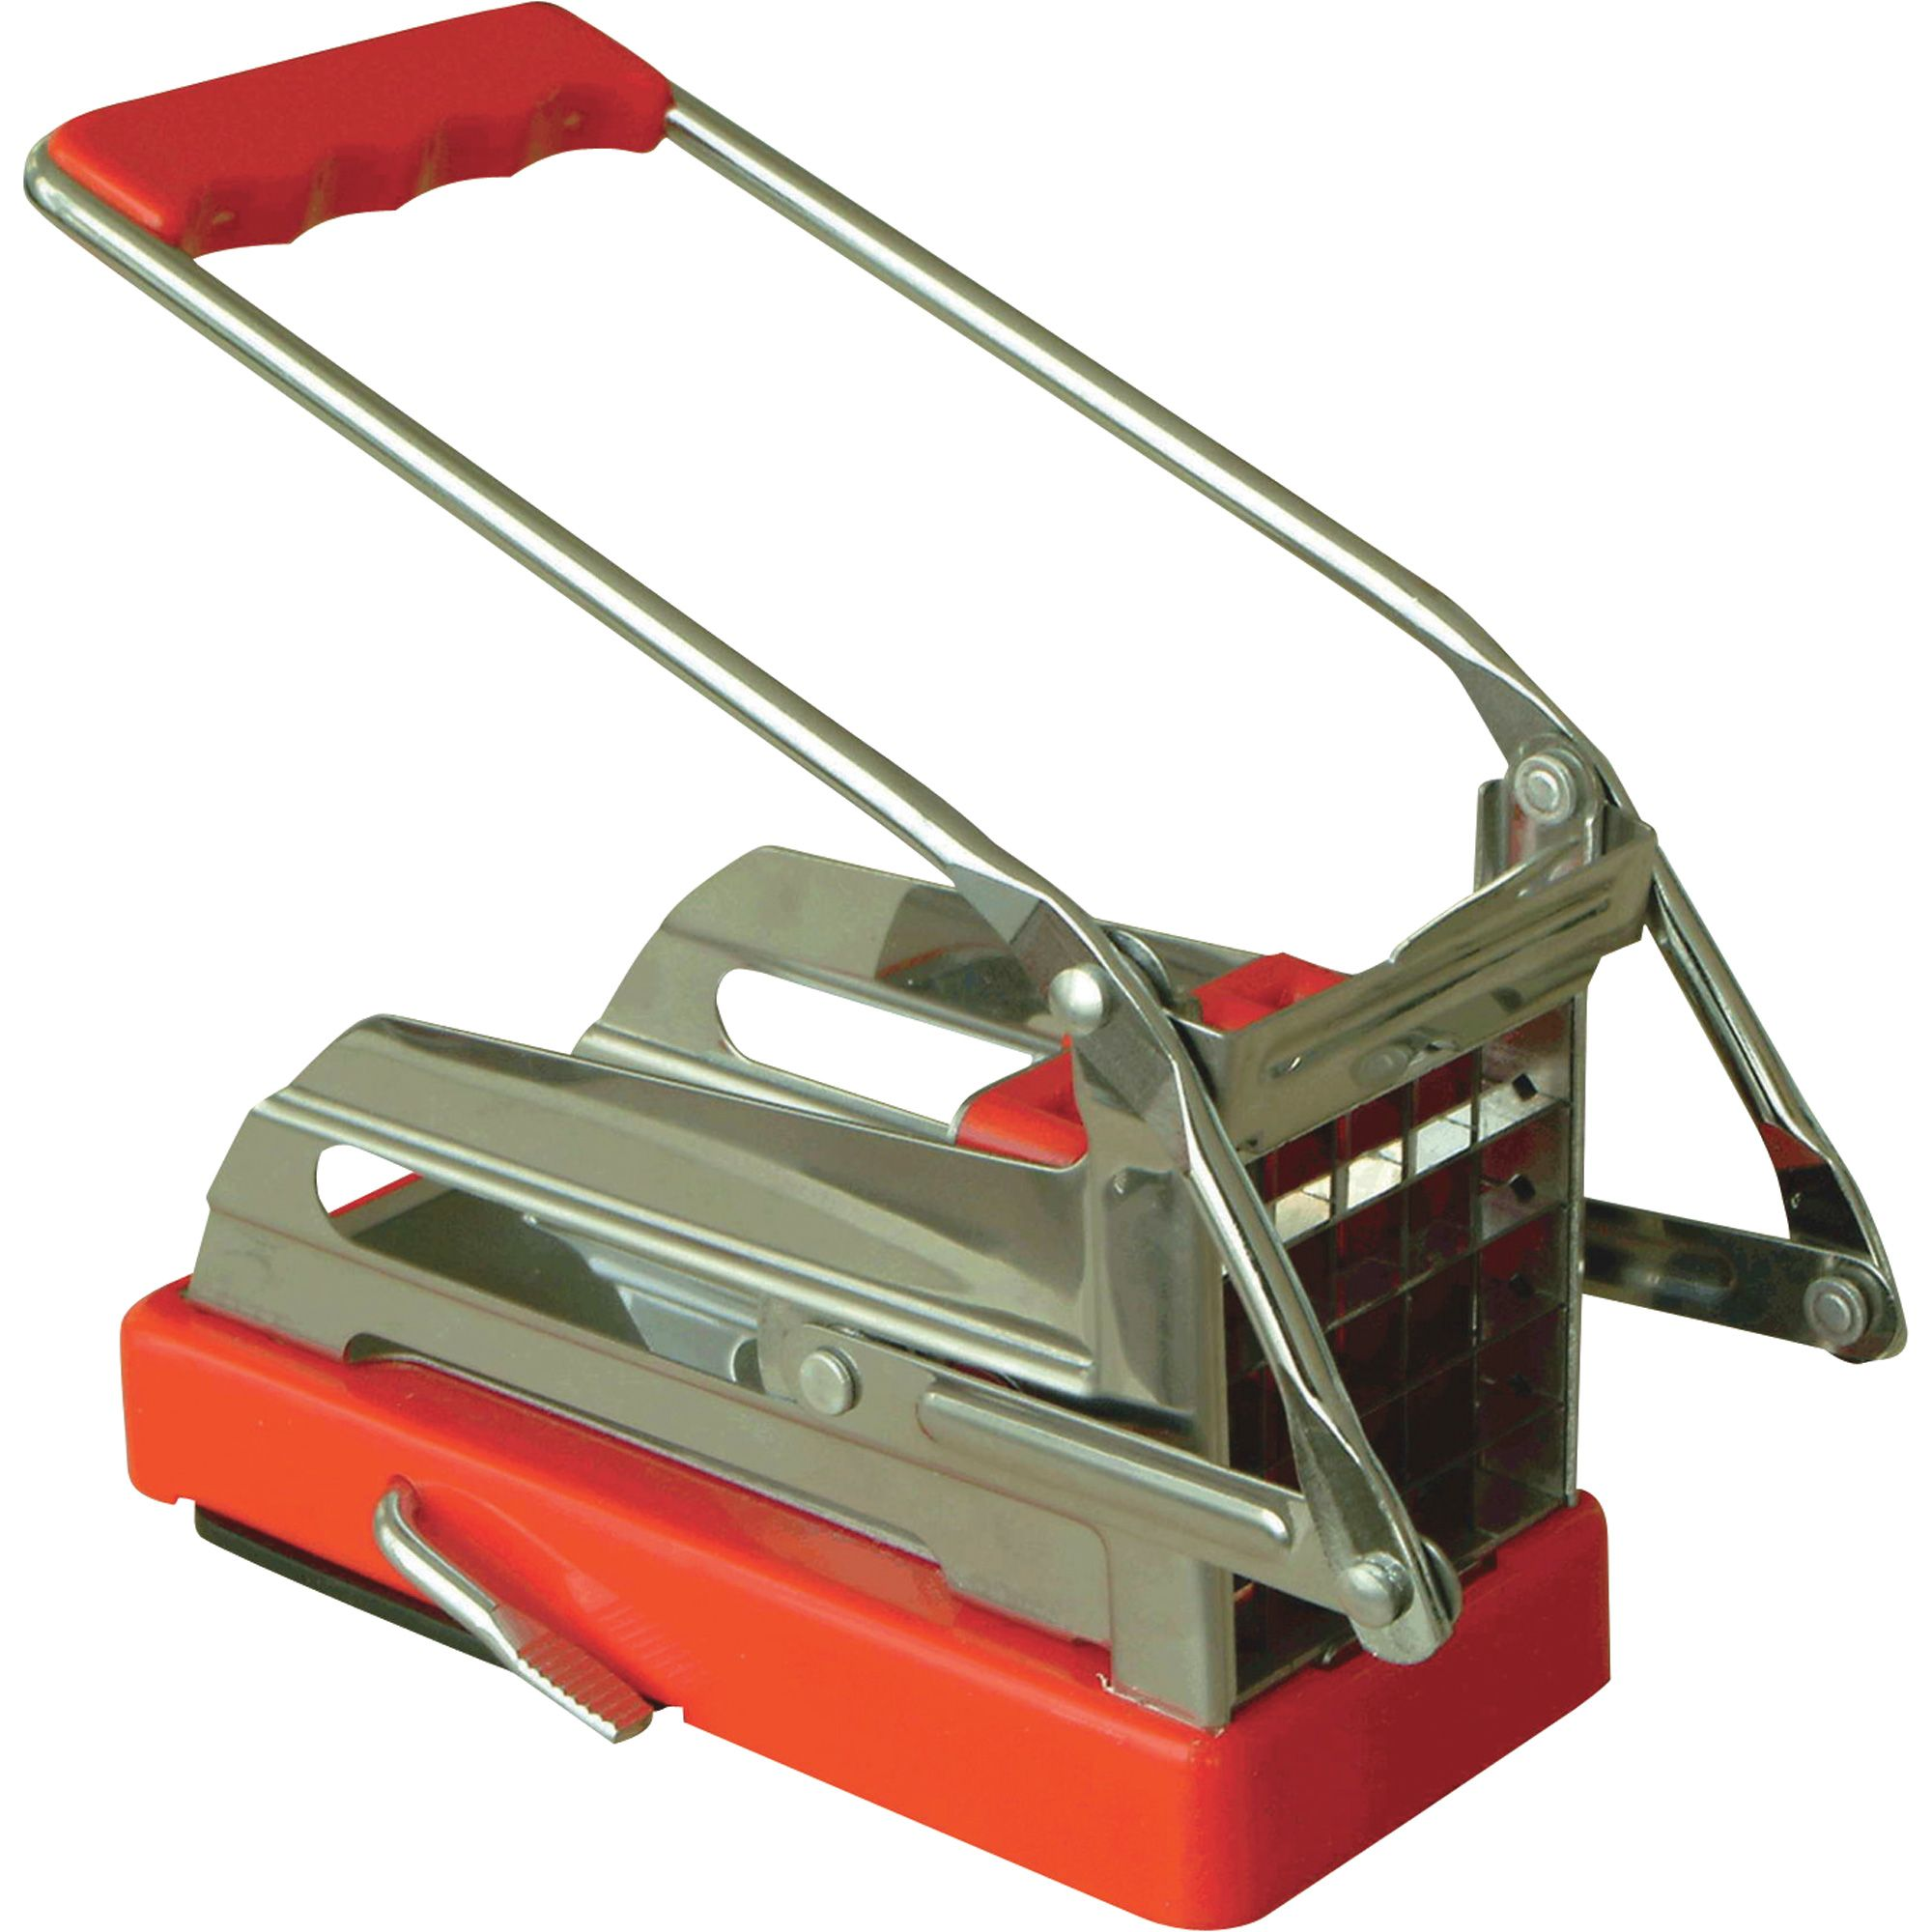 Kitchener French Fry Cutter Fry Cutters Northern Tool